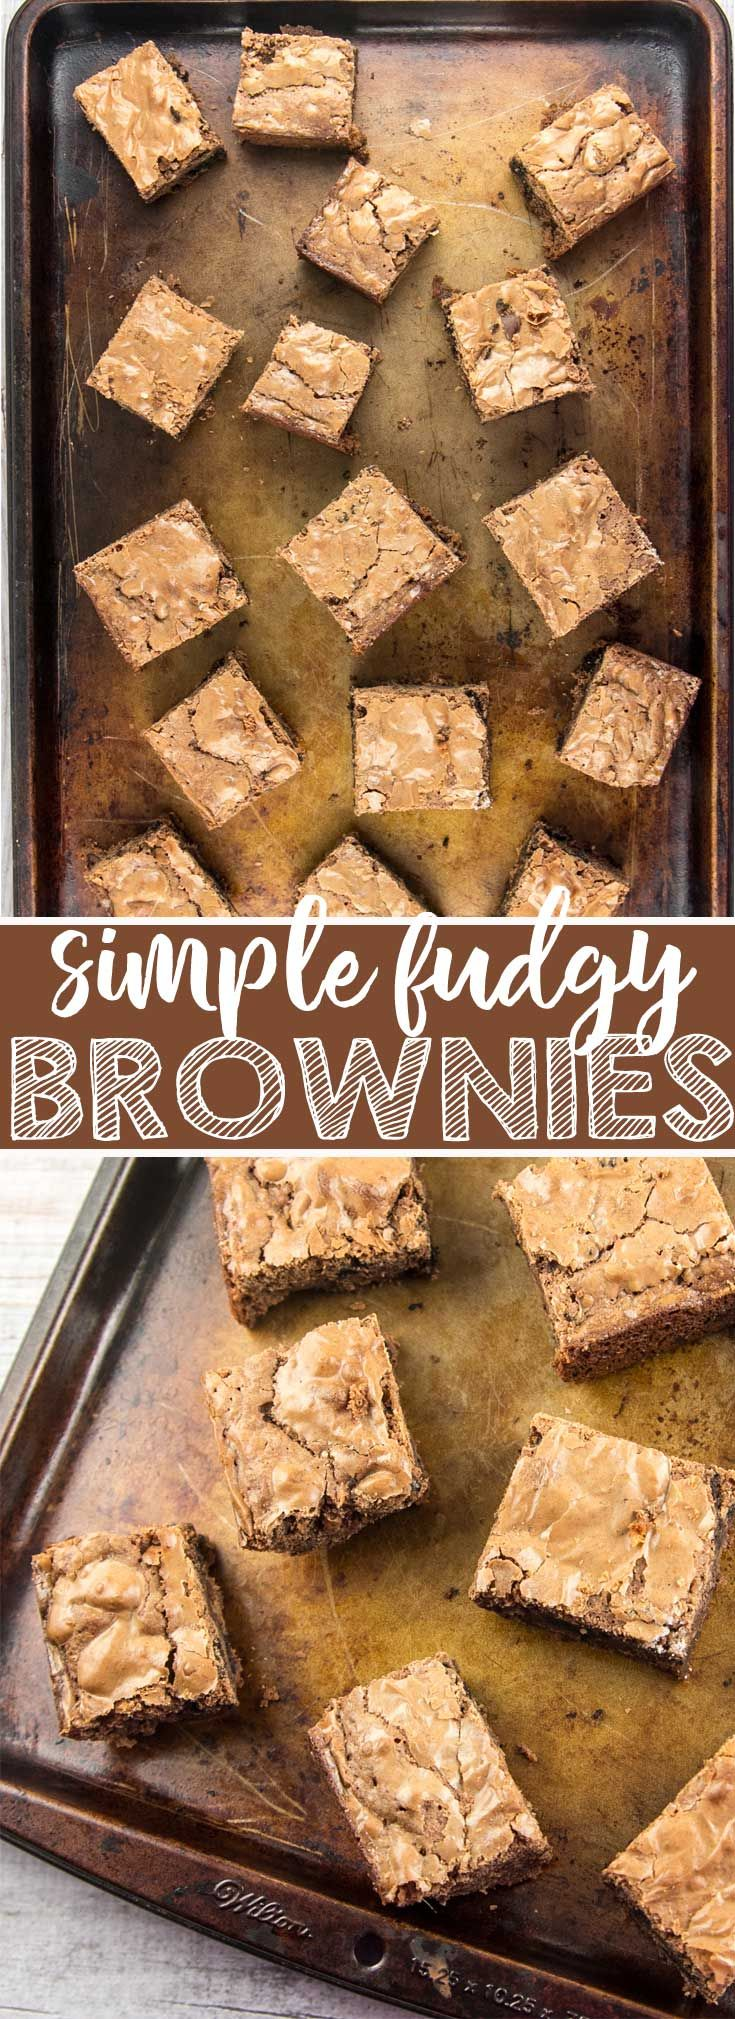 Simple and easy fudgy brownies, rich and dense yet cakey, mixed by hand with ingredients already in your kitchen. Better than boxed mix! {Bunsen Burner Bakery} via @bnsnbrnrbakery